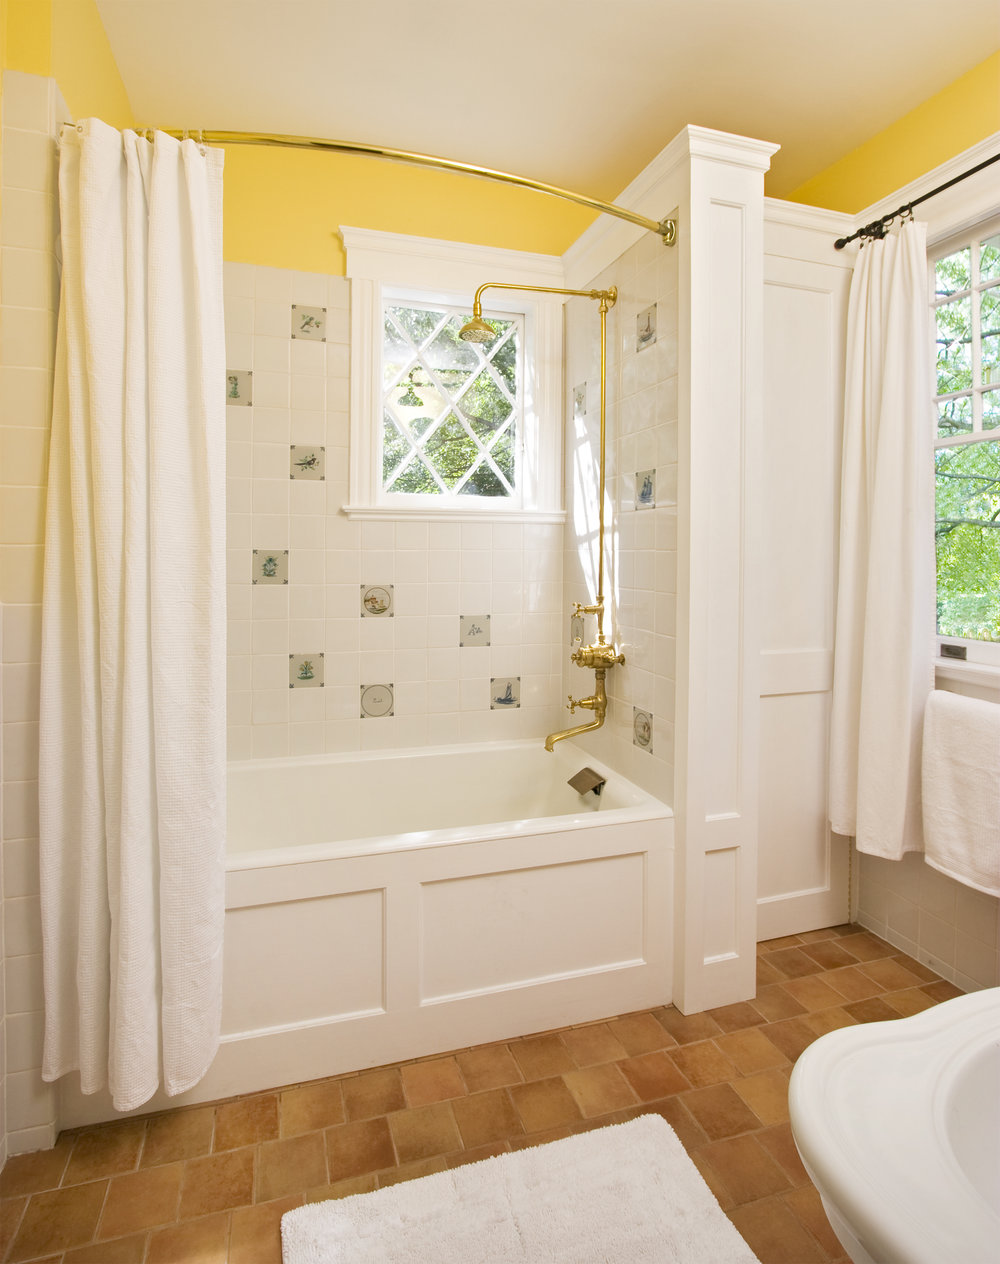 The renovated third floor bathroom features exposed plumbing, a window original to the home and Hand Painted Delft Ceramic Tiles  as well as custom millwork and terra cotta tile floors with radiant heat.